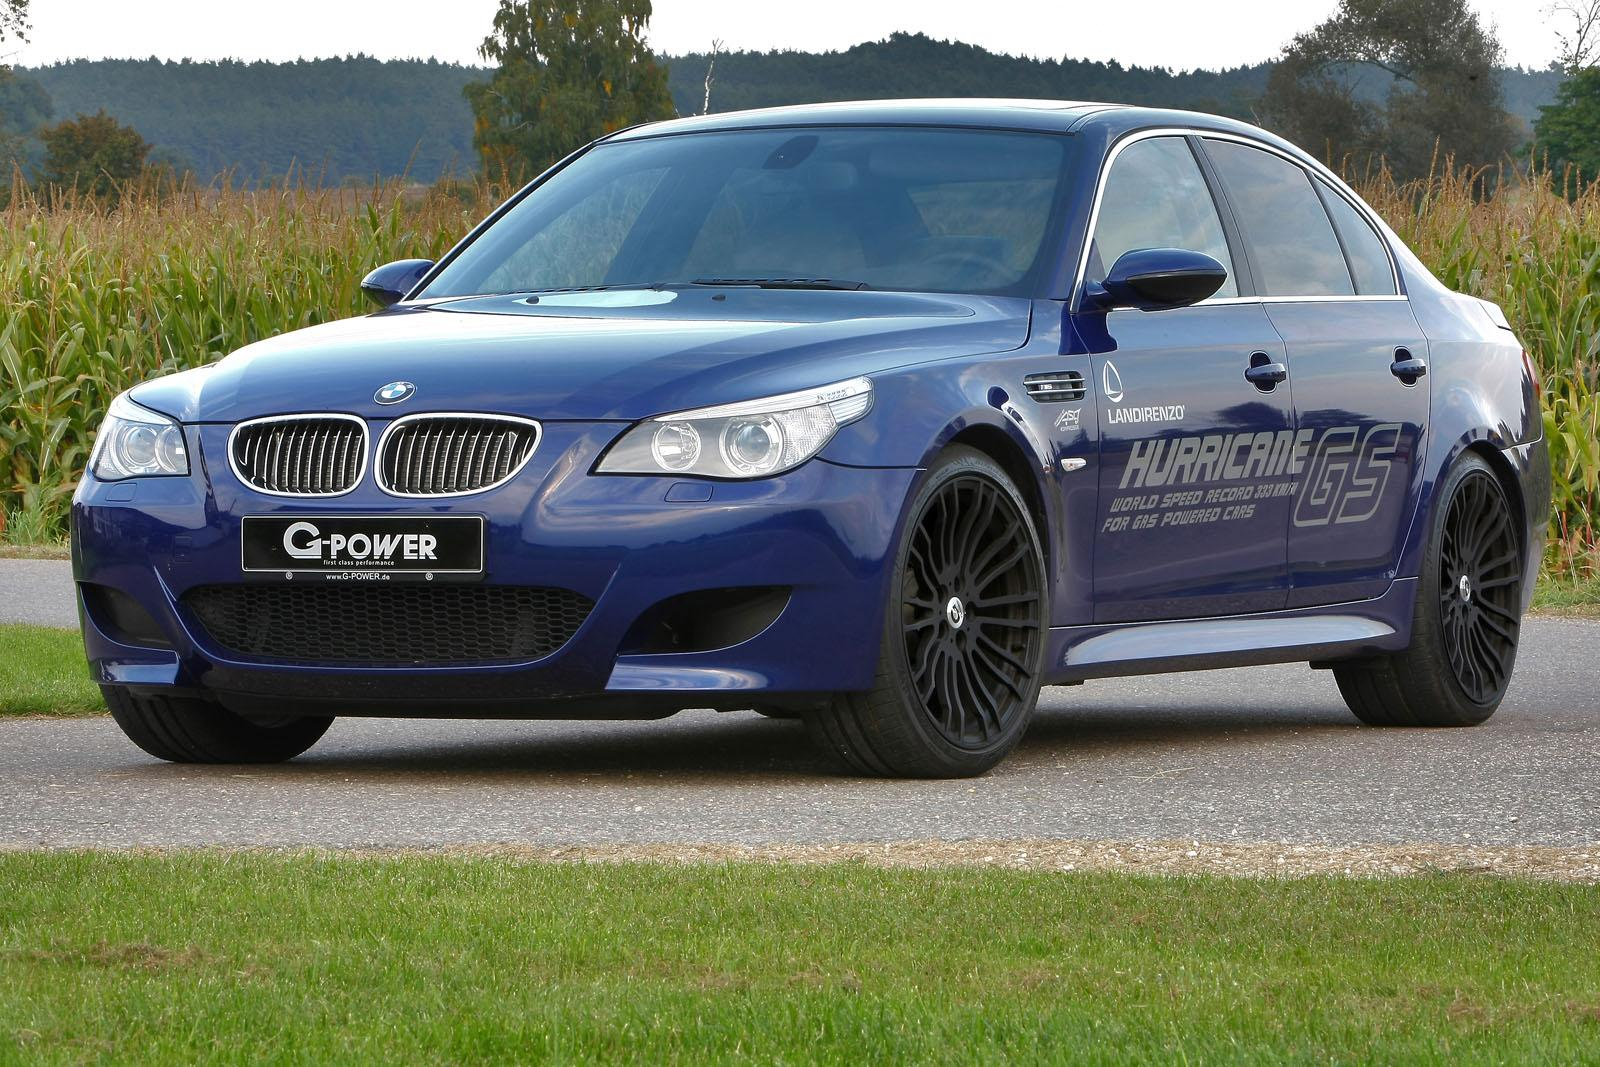 2011 G-Power BMW M5 Hurricane GS – Front Angle View  23